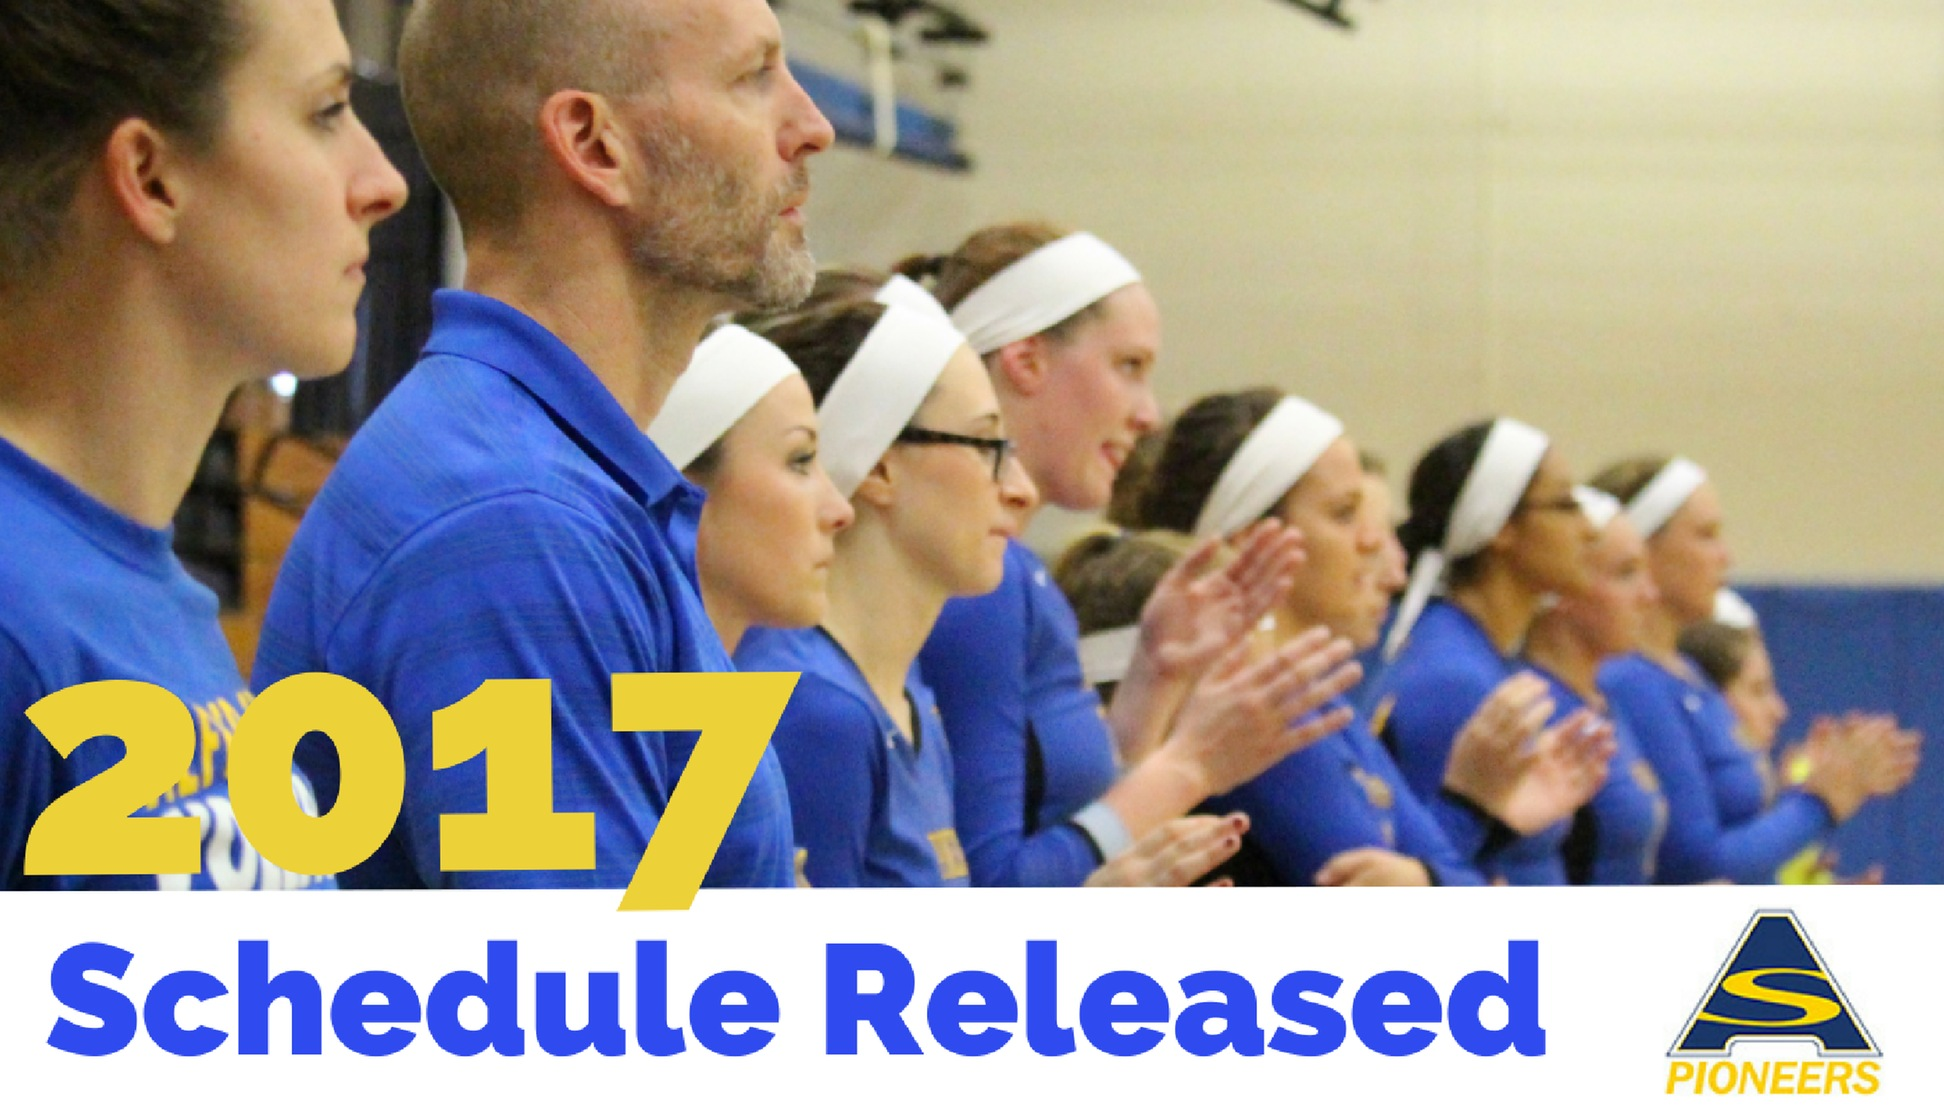 Volleyball Team Announces 2017 Schedule